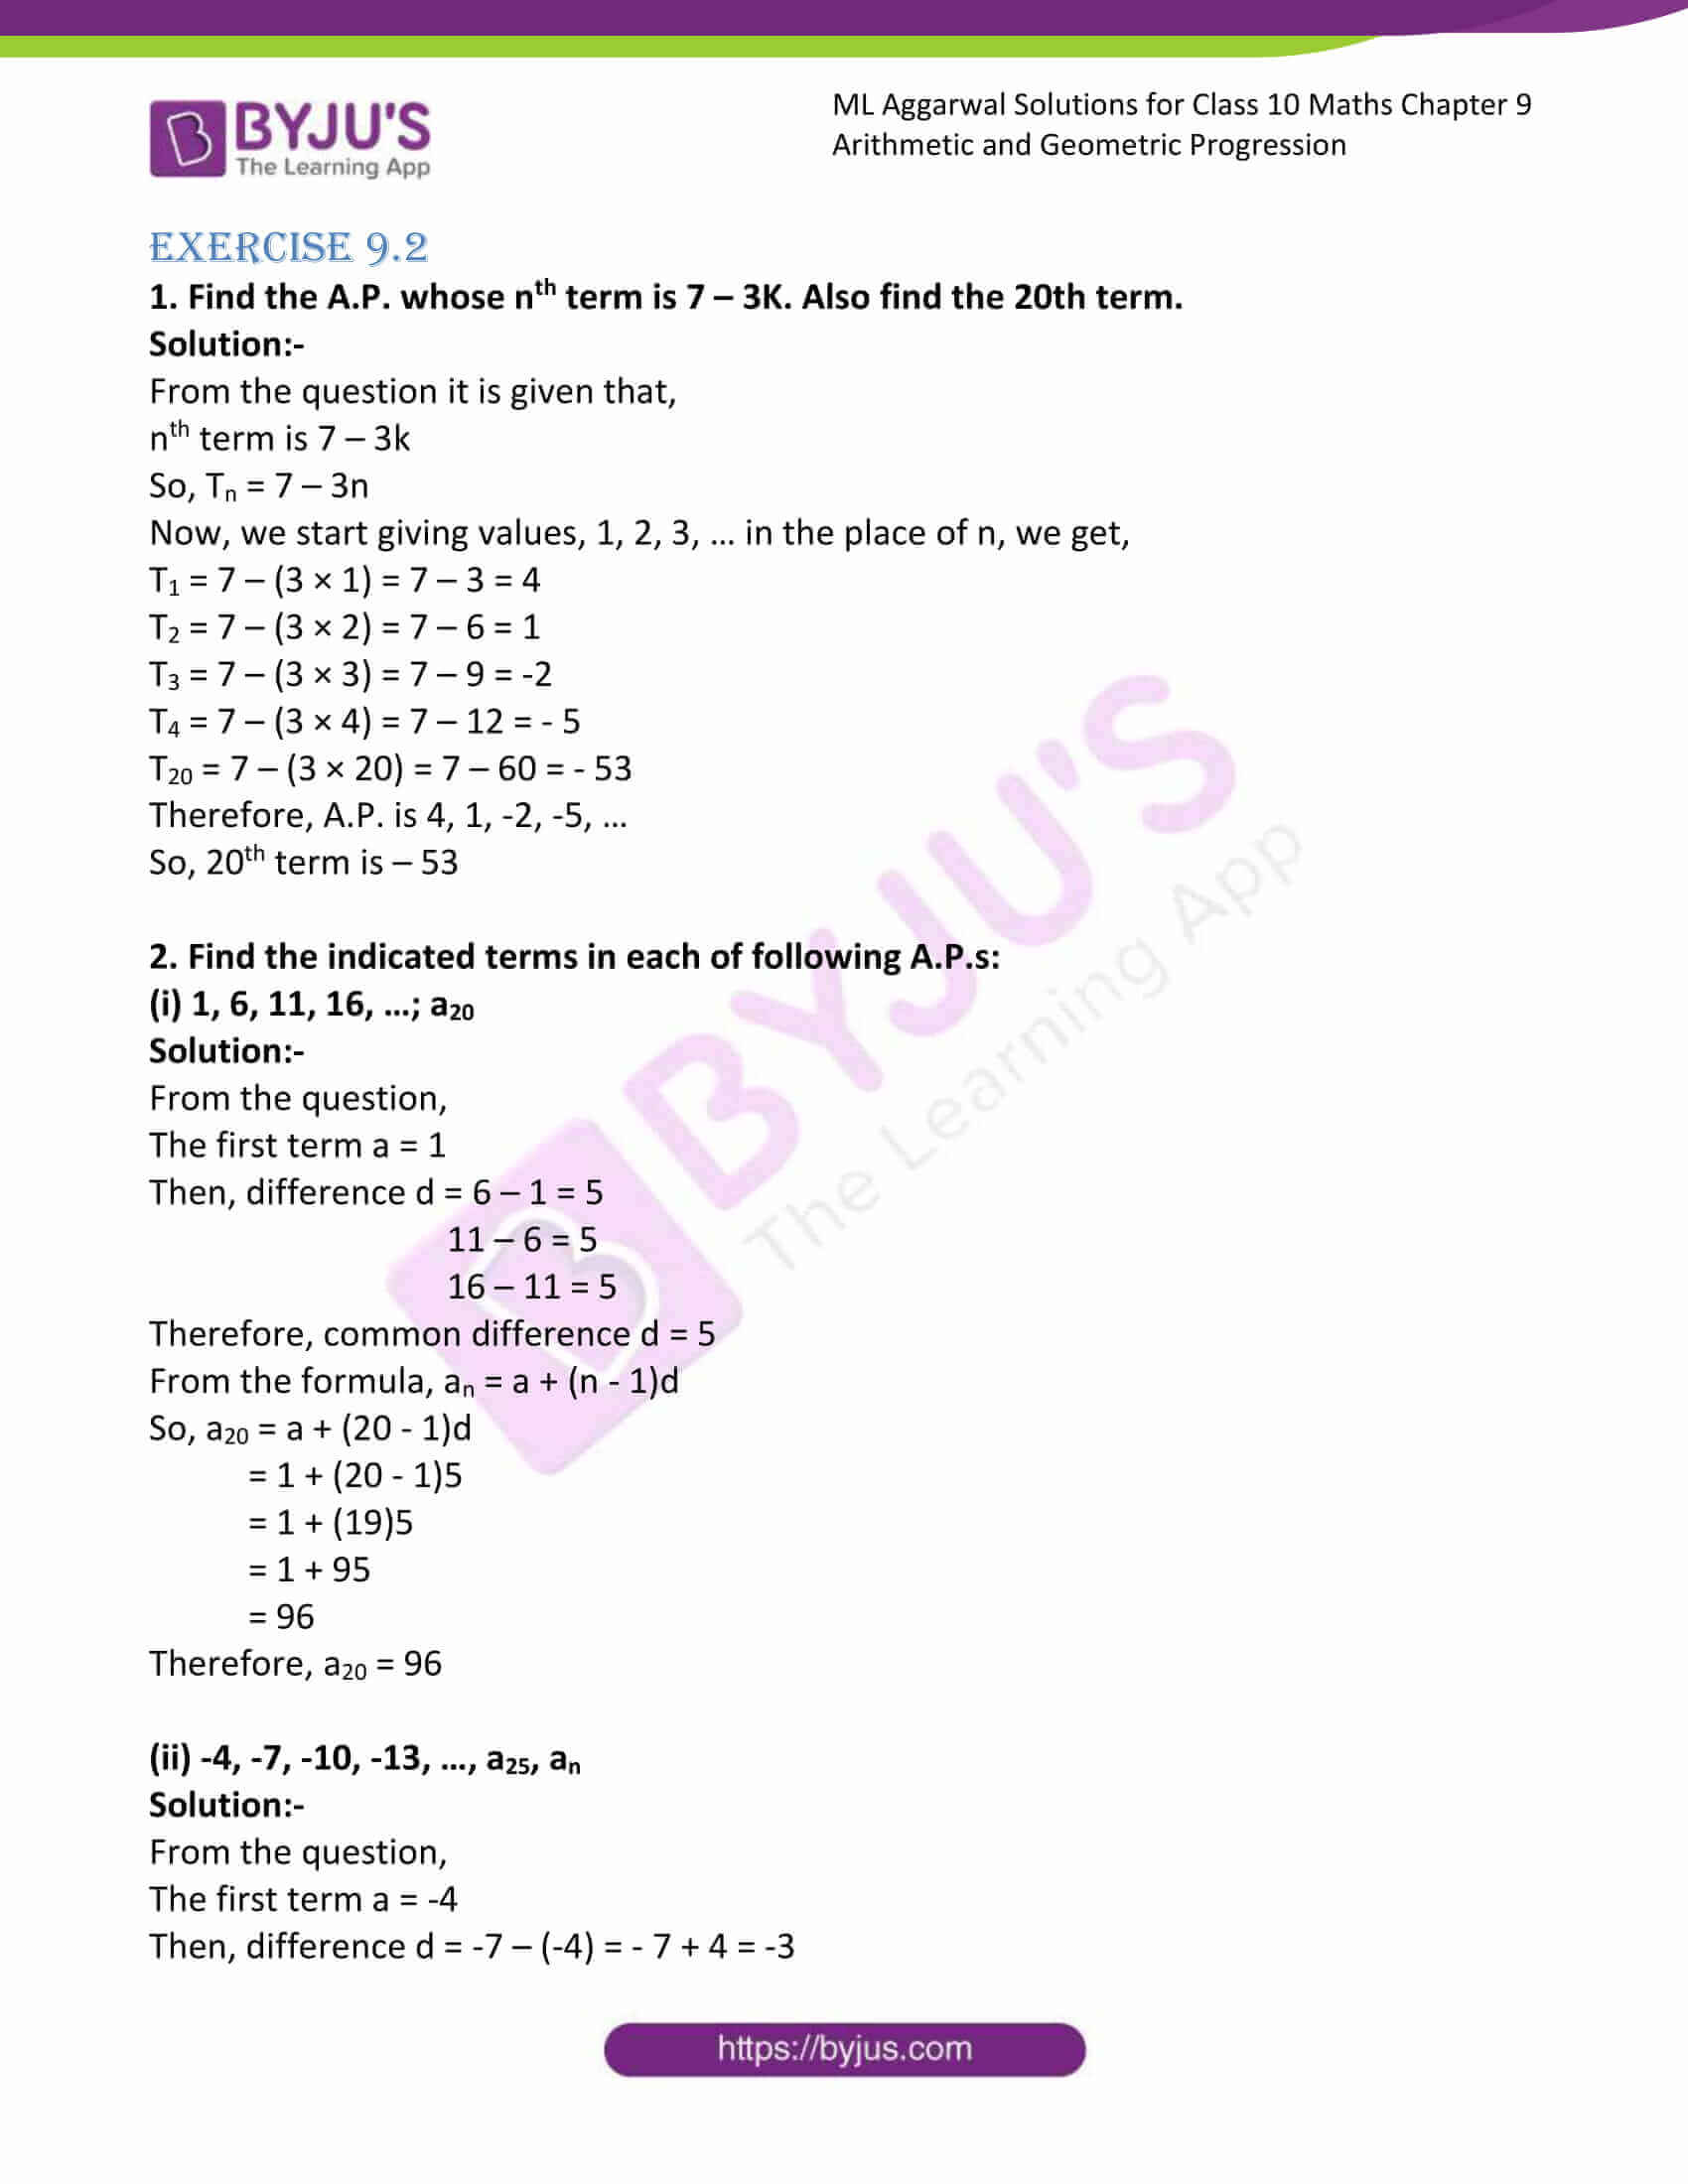 ml aggarwal solutions class 10 maths chapter 9 05